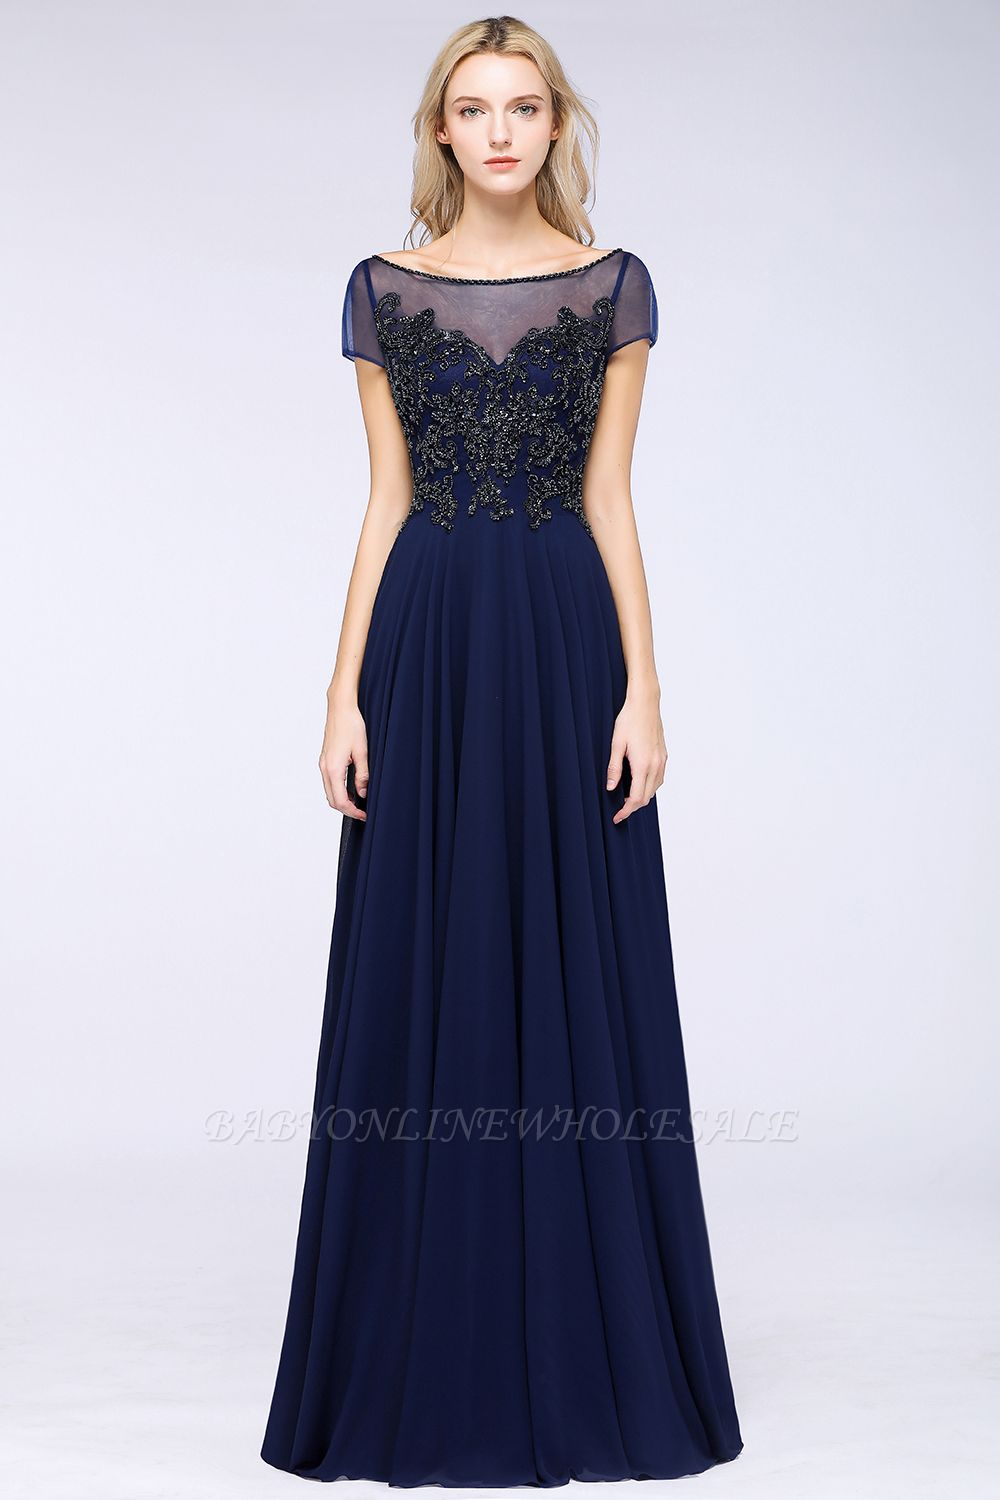 Elegant A-Line Short Sleeves Appliques Beads Bridesmaid Dresses